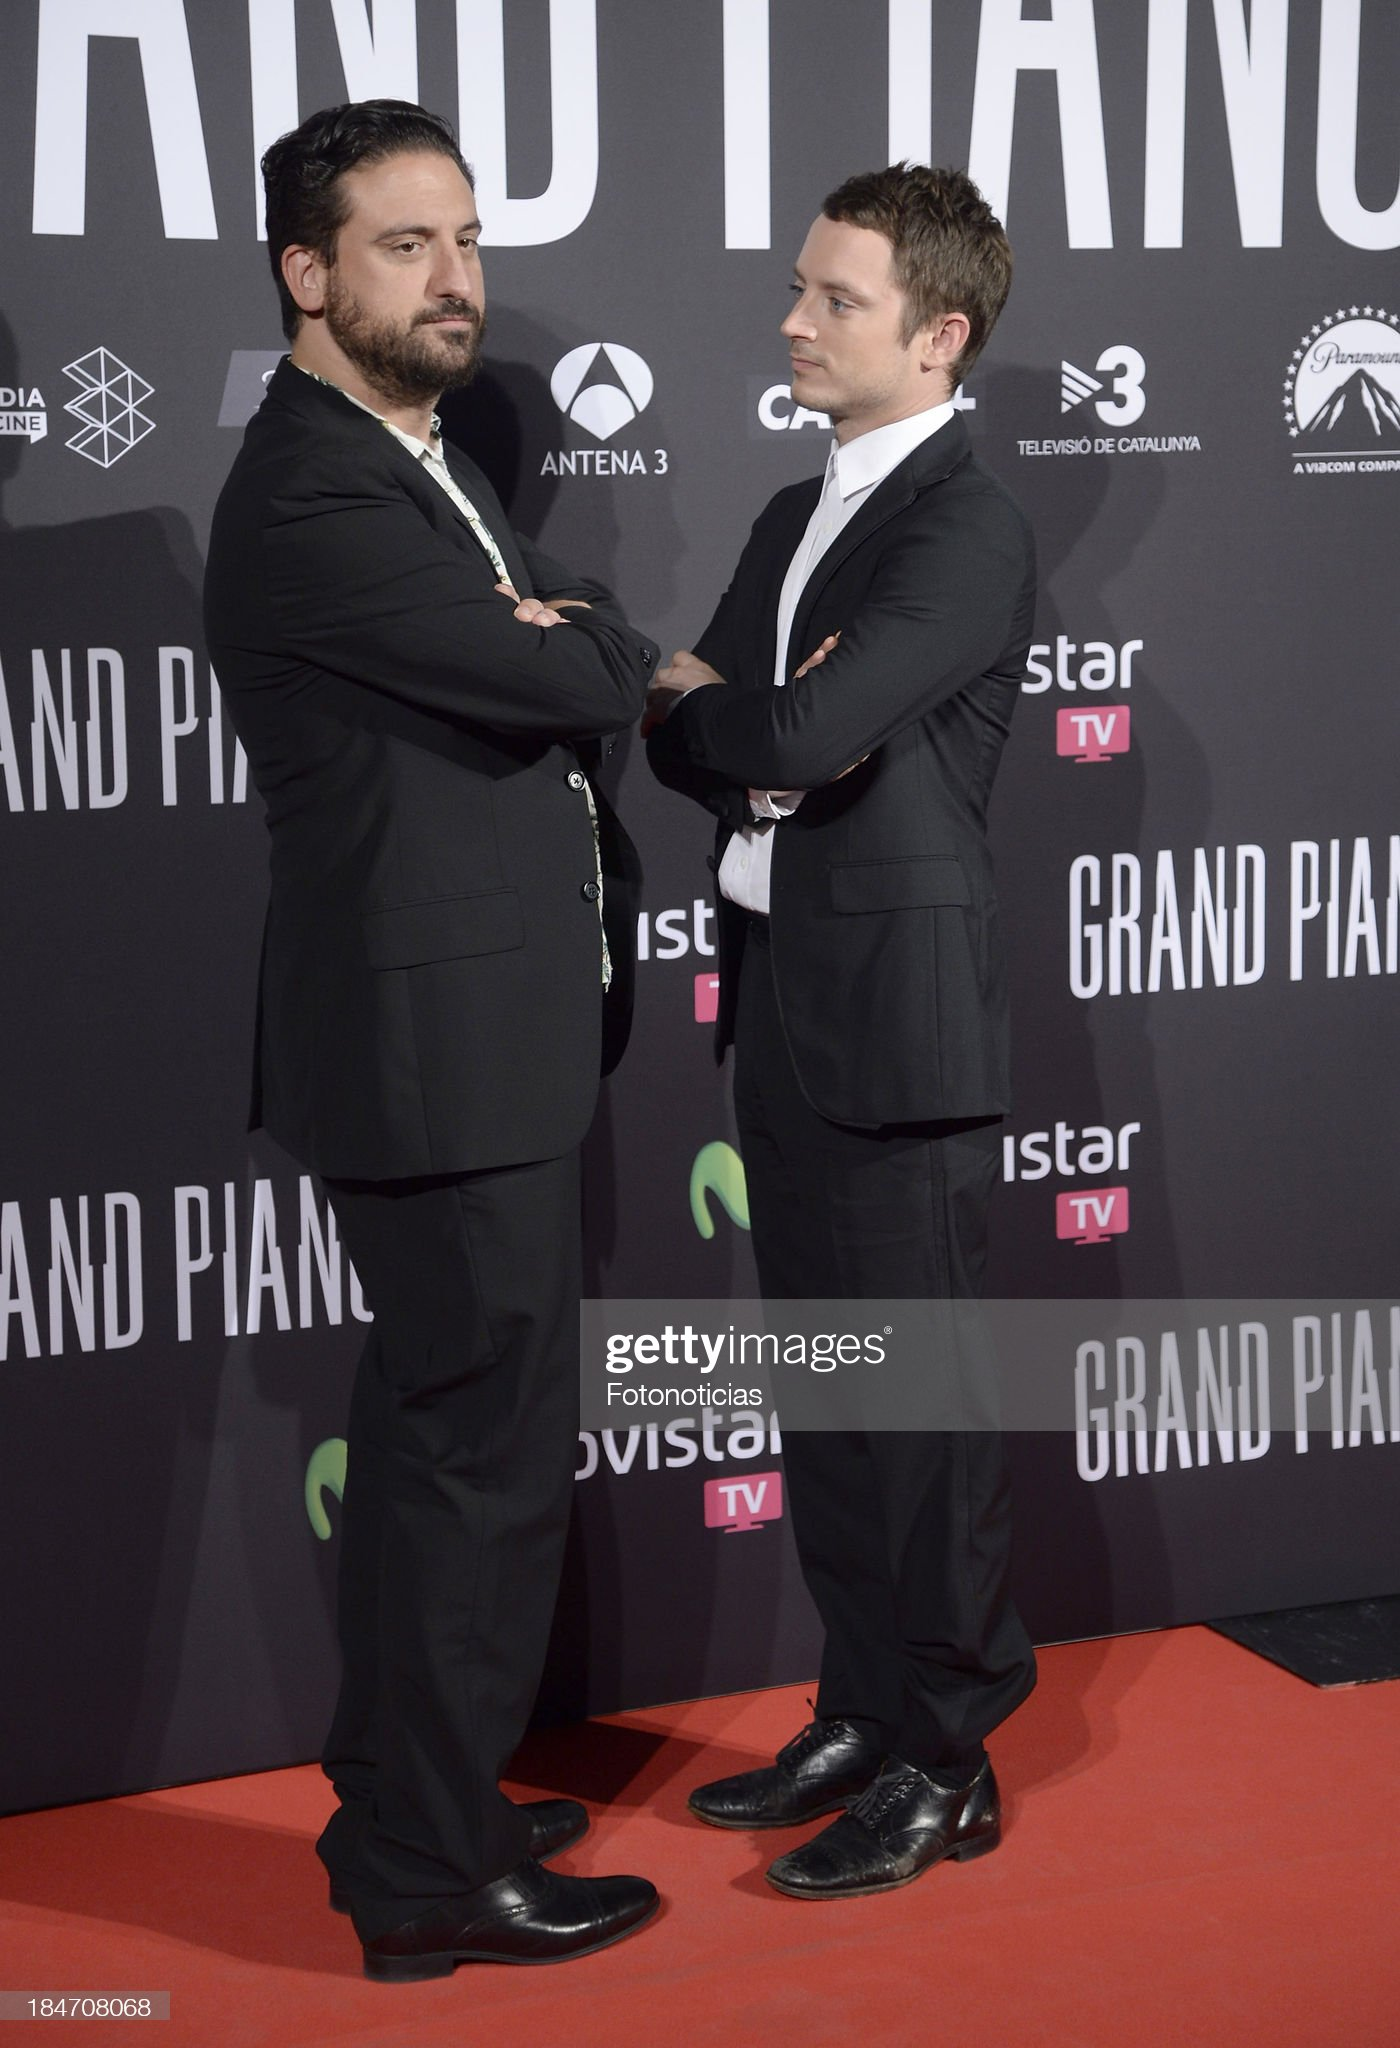 ¿Cuánto mide Eugenio Mira? - Altura Director-eugenio-mira-and-actor-elijah-wood-attend-the-premiere-of-picture-id184708068?s=2048x2048